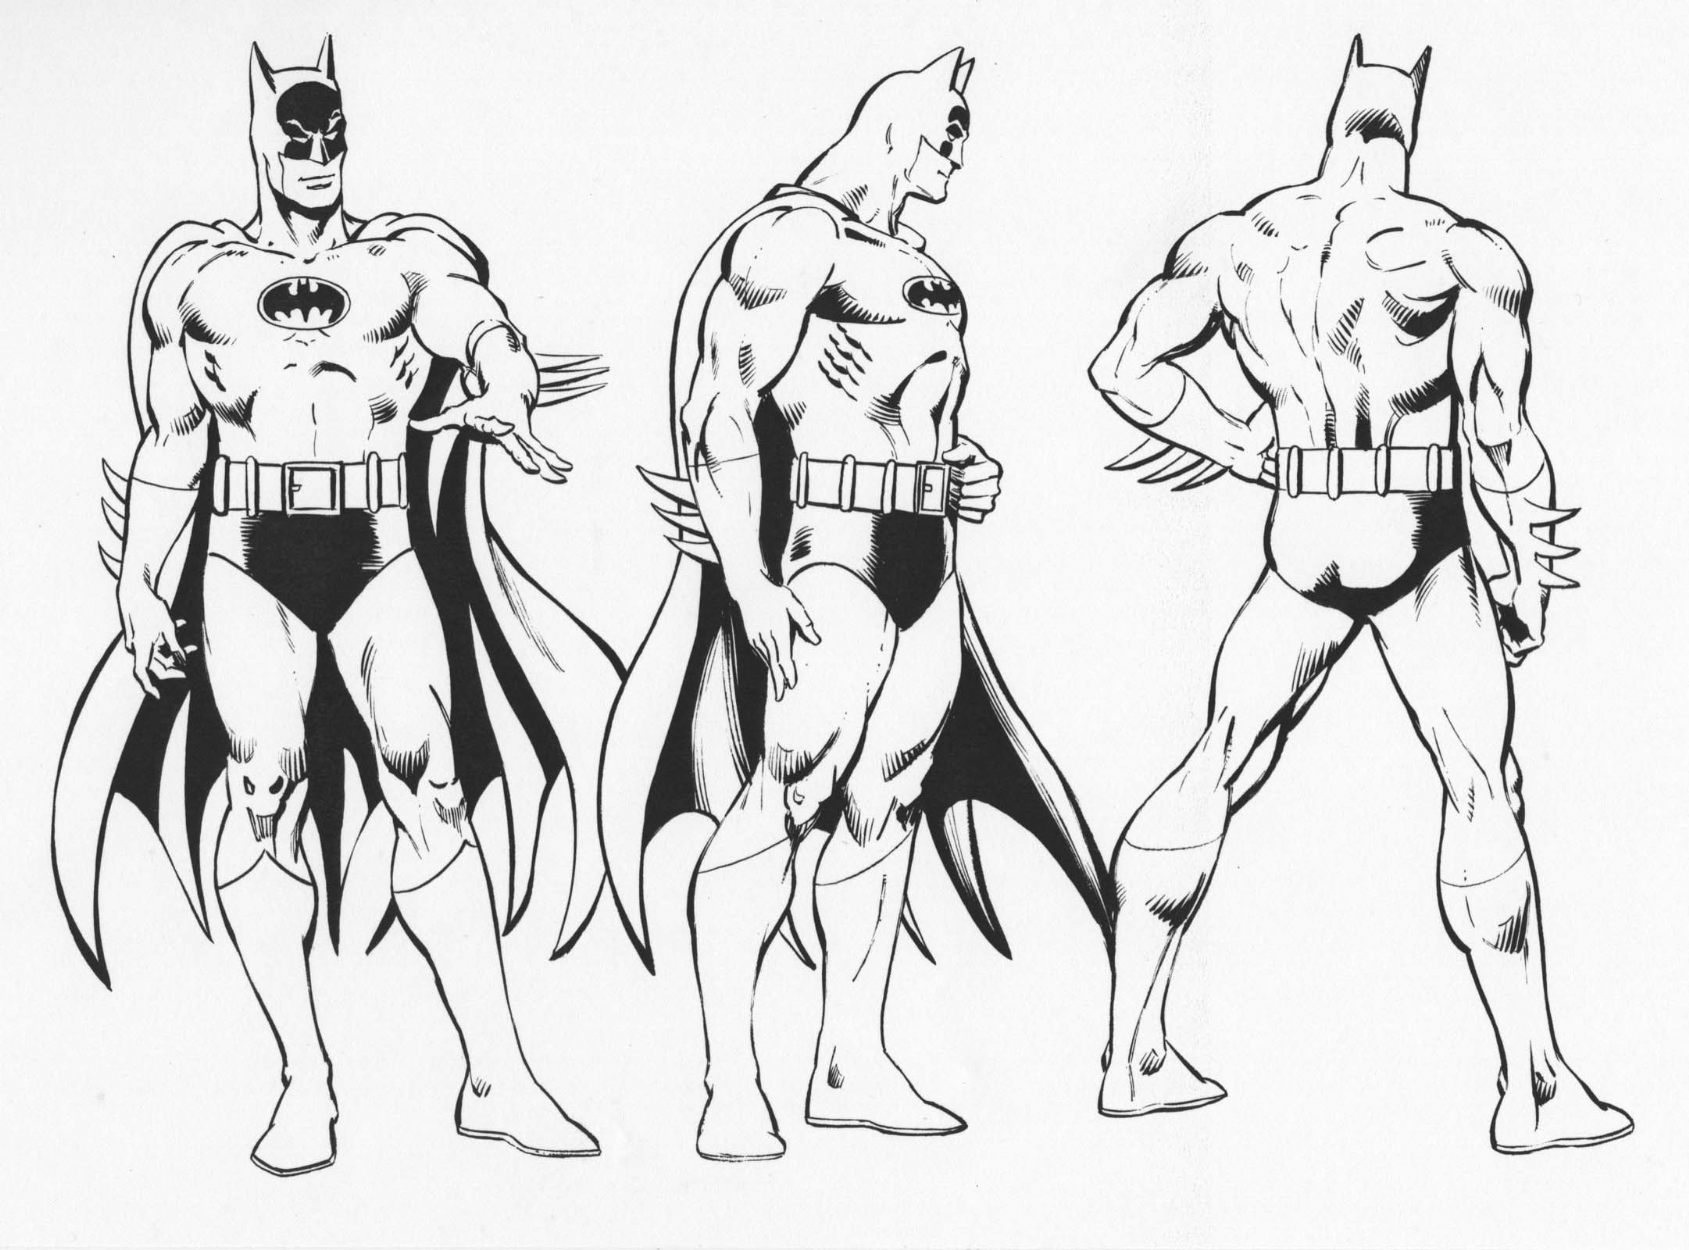 BATMAN style guide, in GERRY ACERNO's INKING over other